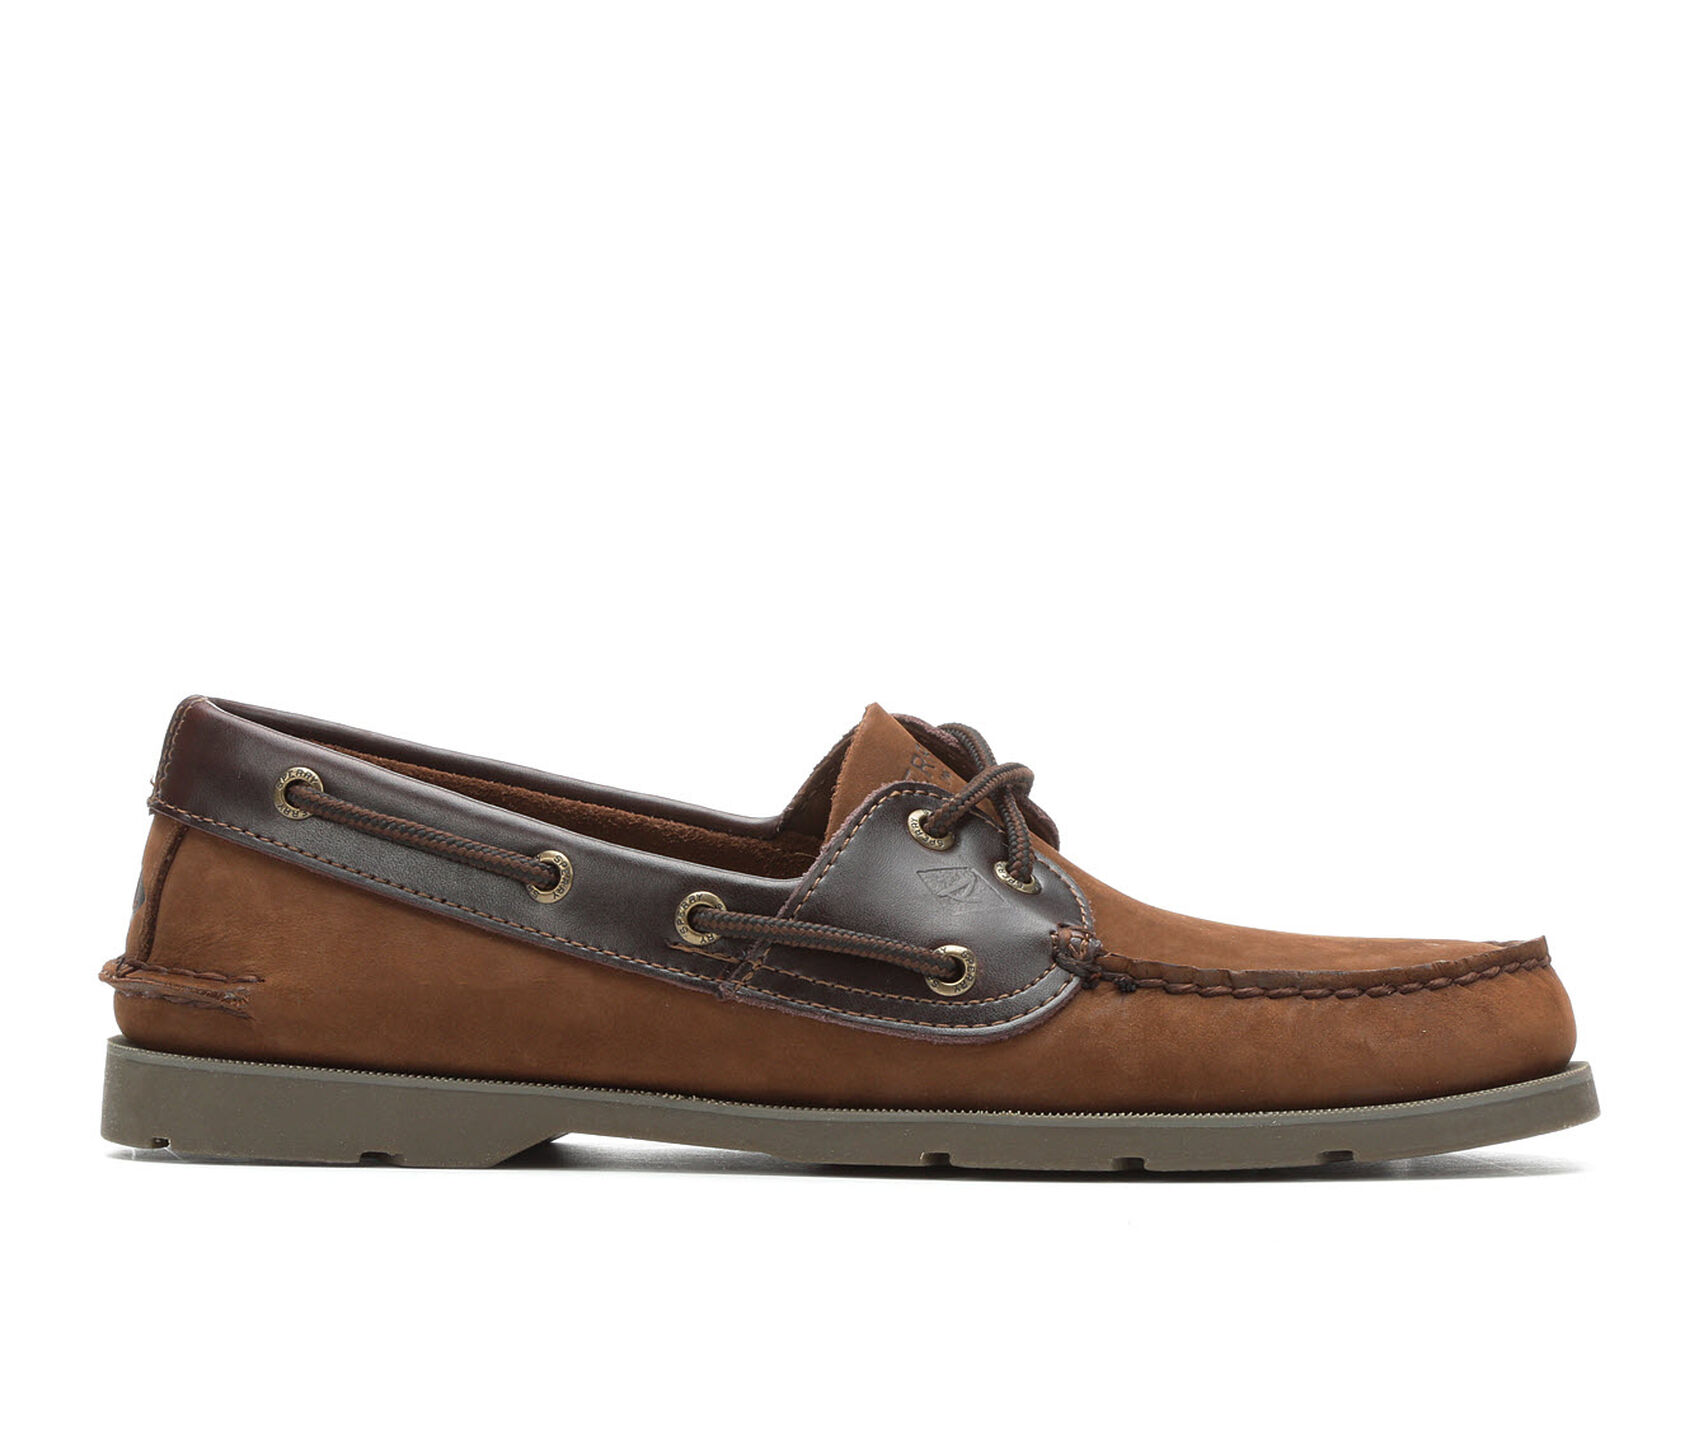 2019 authentic new lifestyle official site Men's Sperry Leeward 2 Eye Boat Shoes